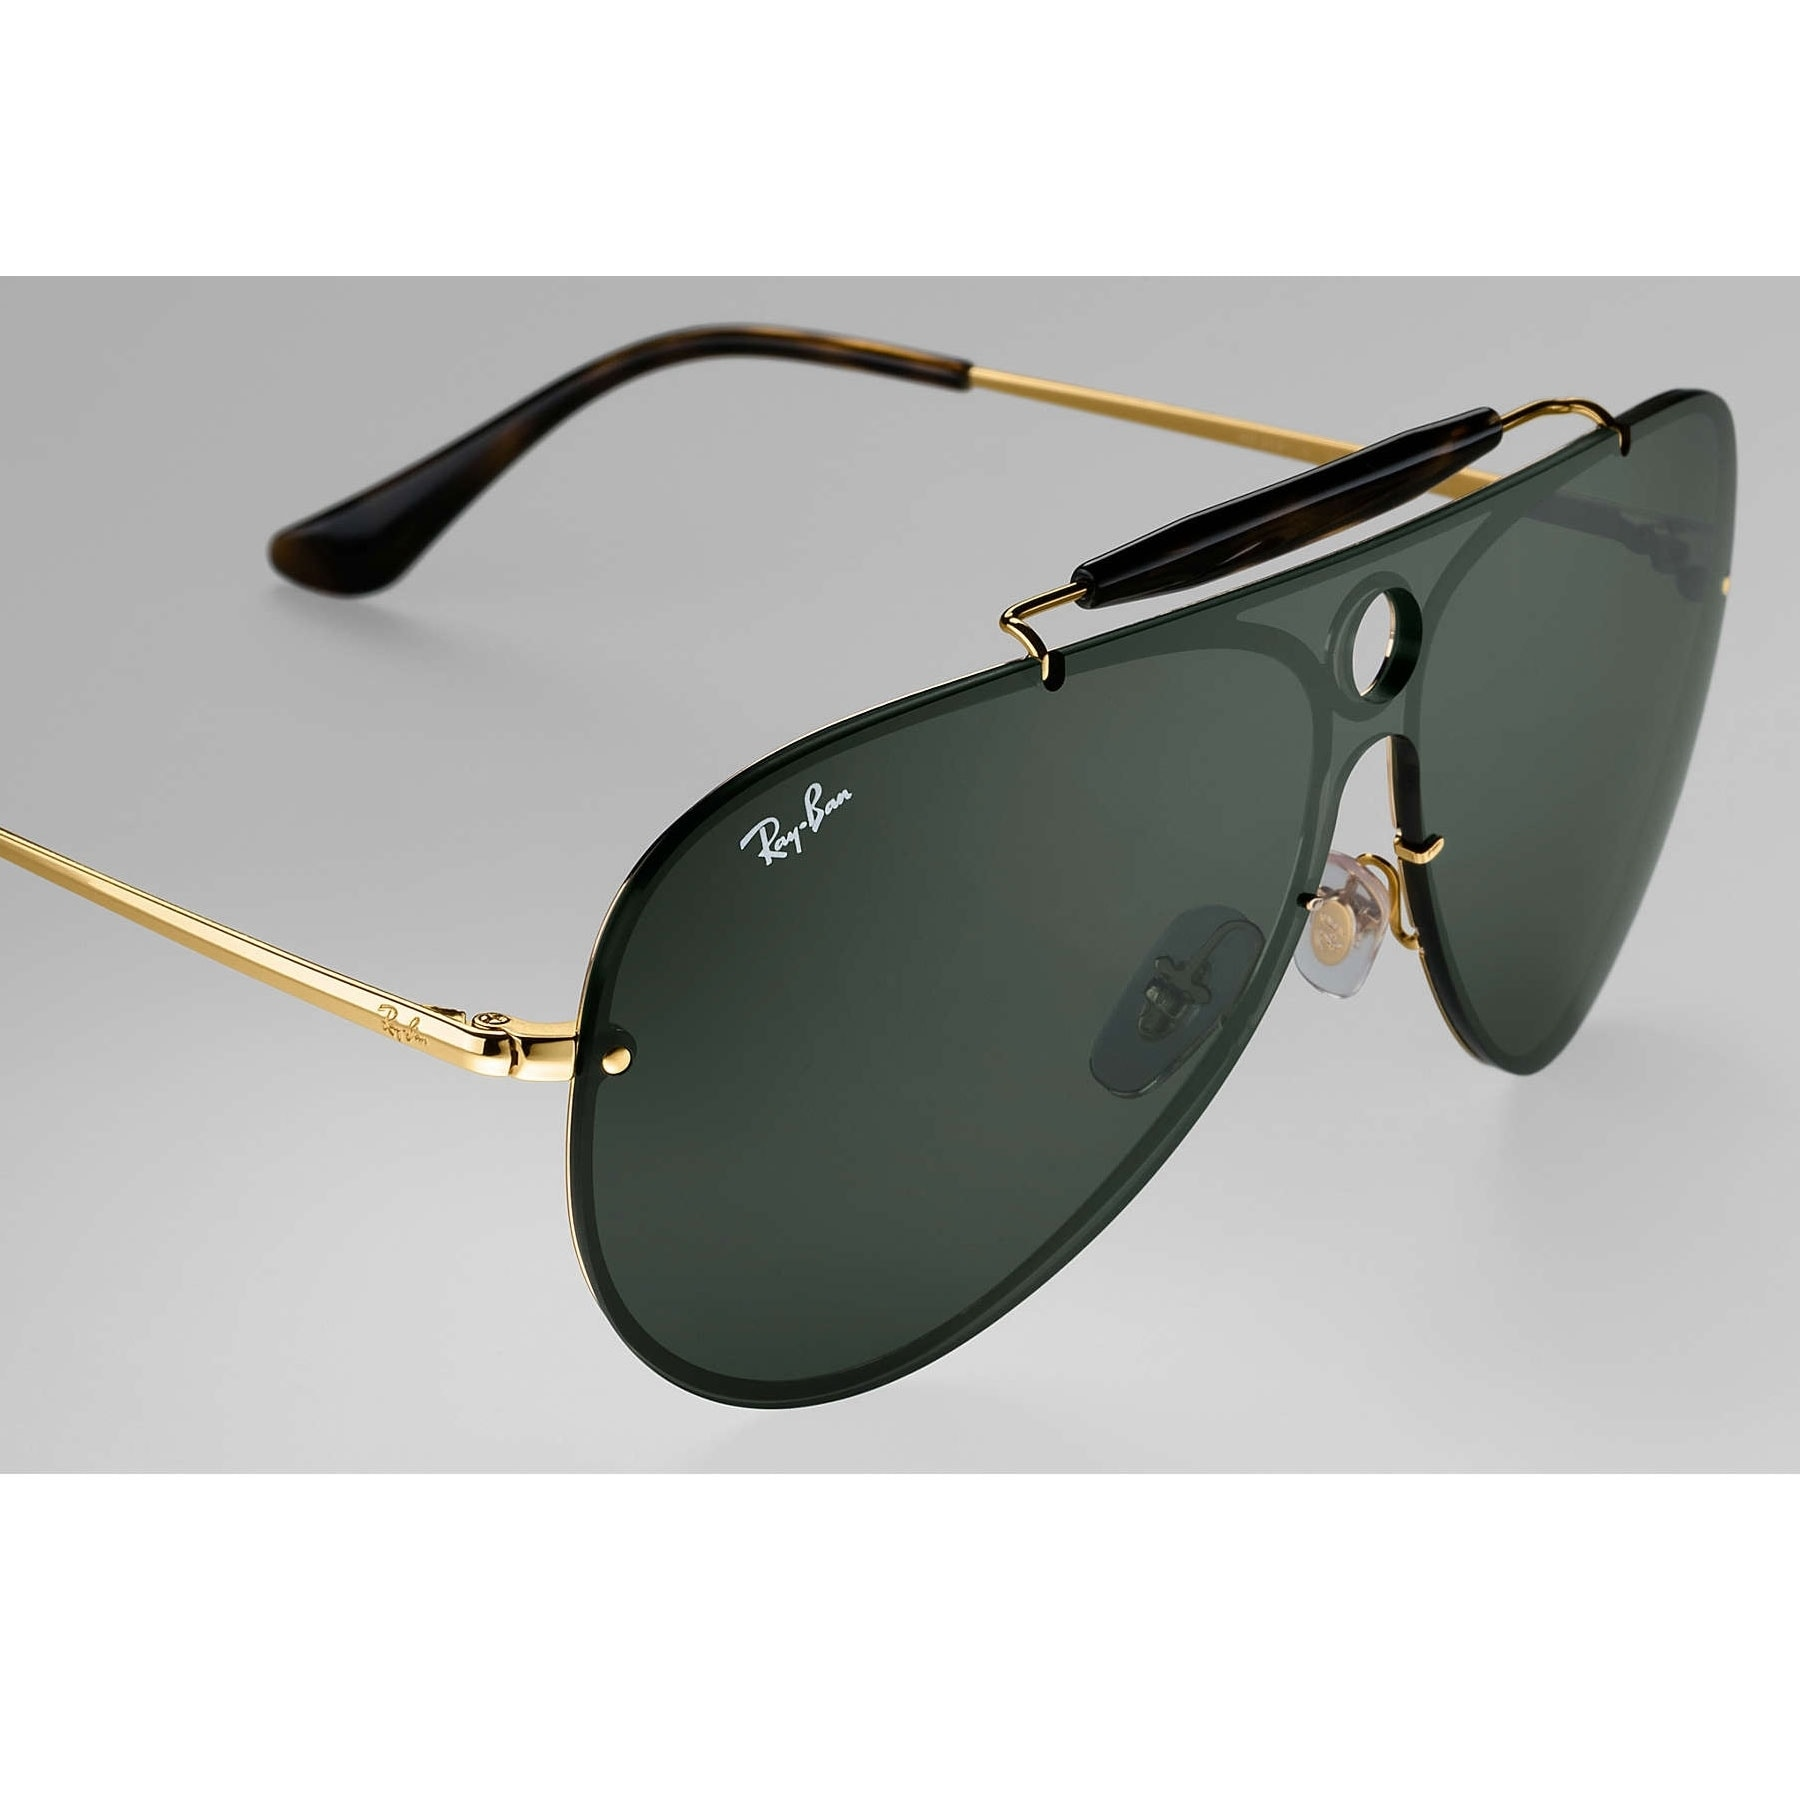 b865f06fb2 ... coupon shop ray ban rb3581n blaze shooter sunglasses gold green classic  32mm black free shipping today